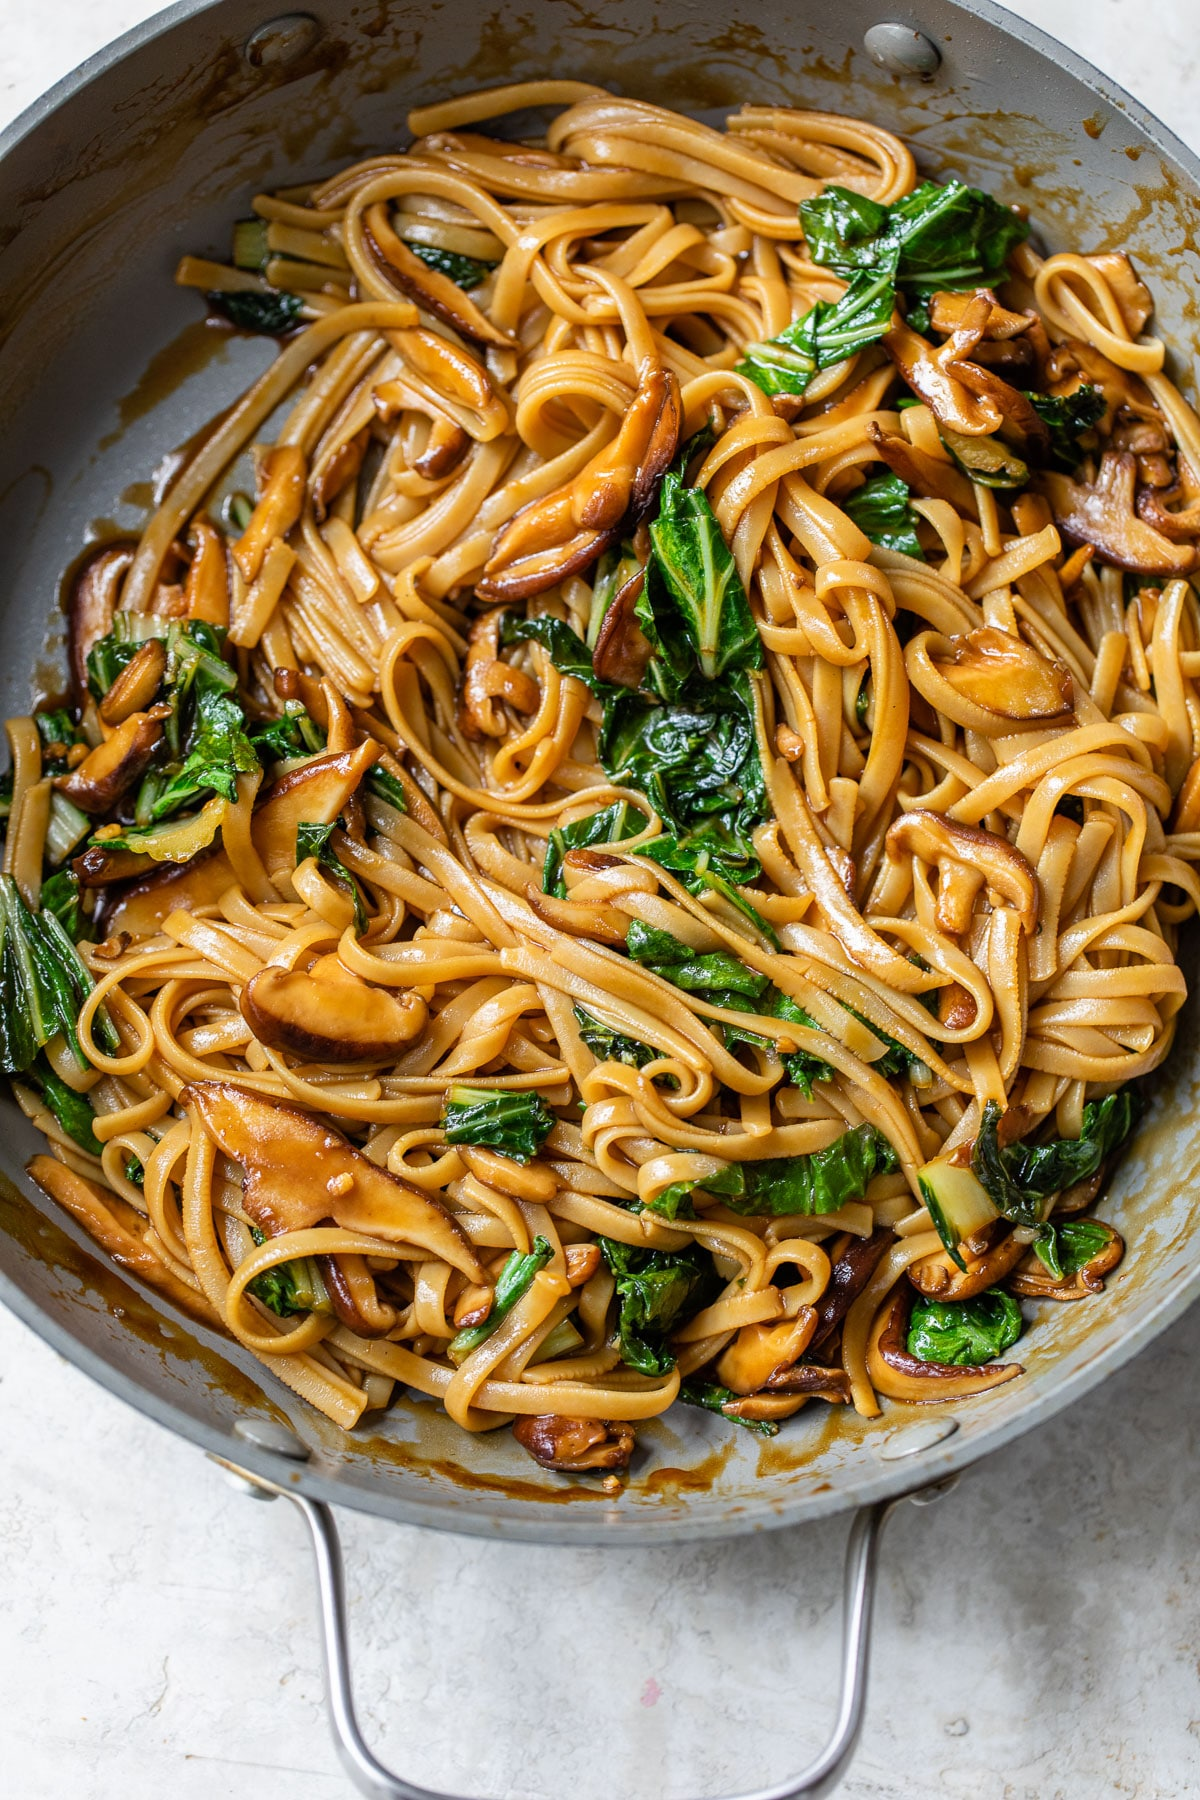 skillet with long noodles, mushrooms and bok choy